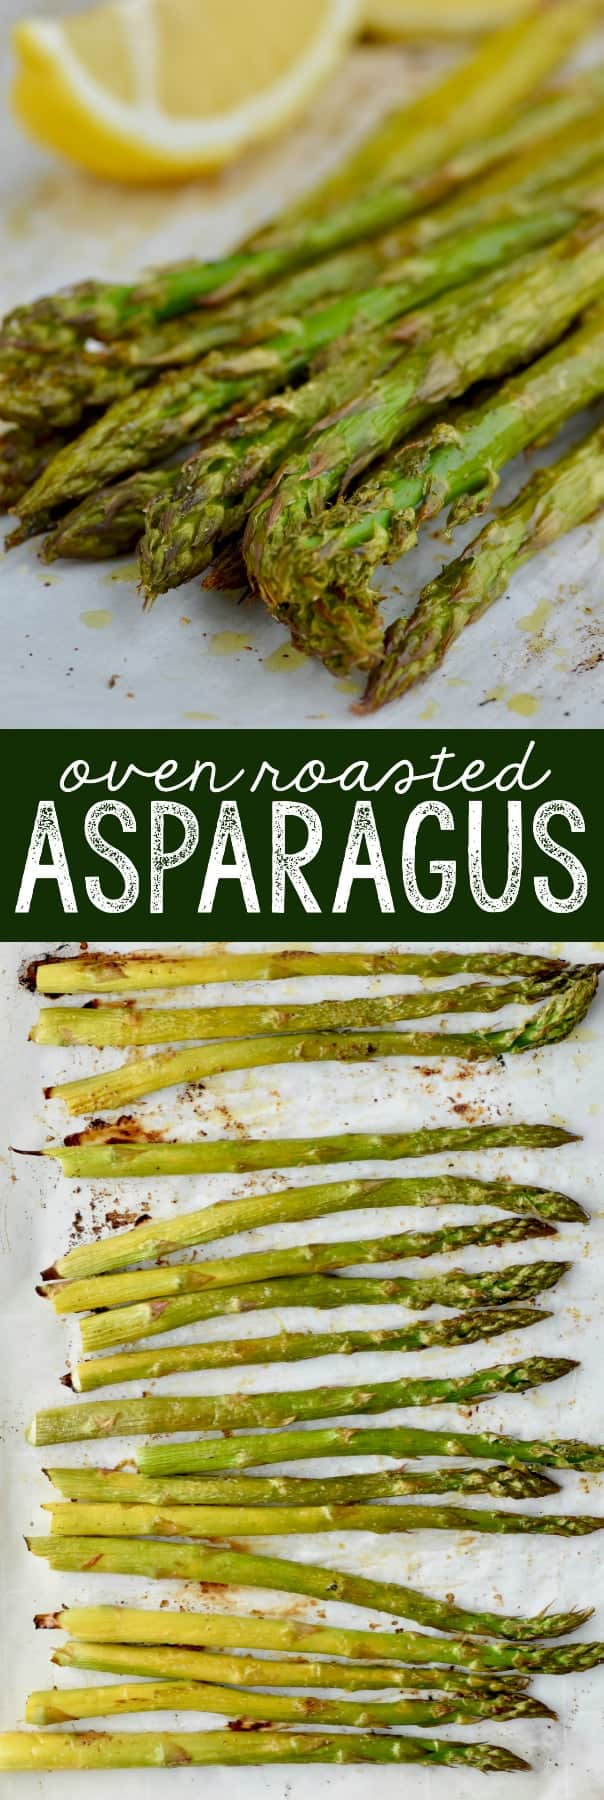 up close oven roasted asparagus with lemons